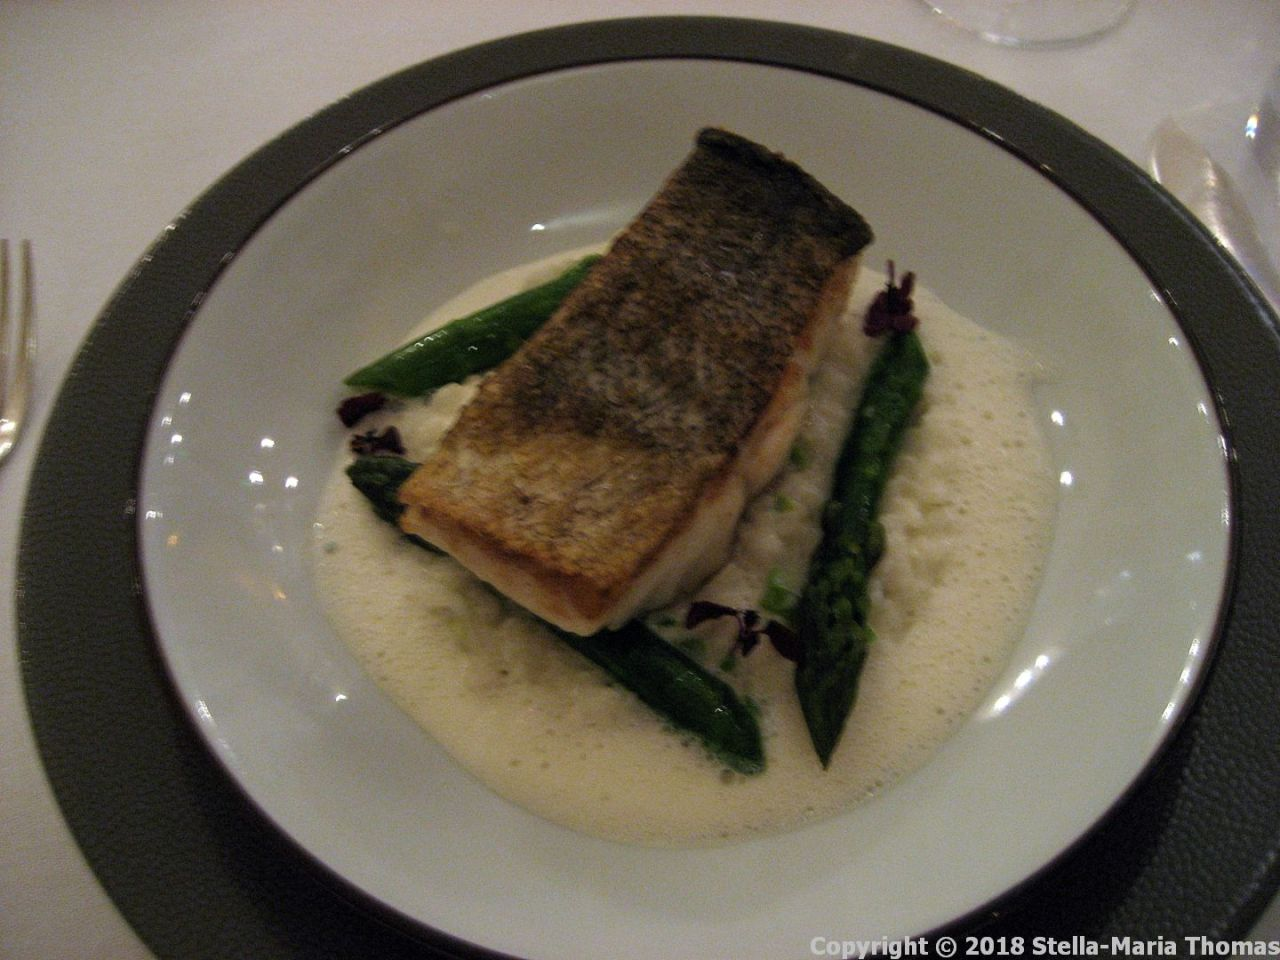 CHATEAU D'ETOGES, SEARED COD FILLET, CREAMY RISOTTO WITH GREEN ASPARAGUS, PARMESAN SAUCE 010